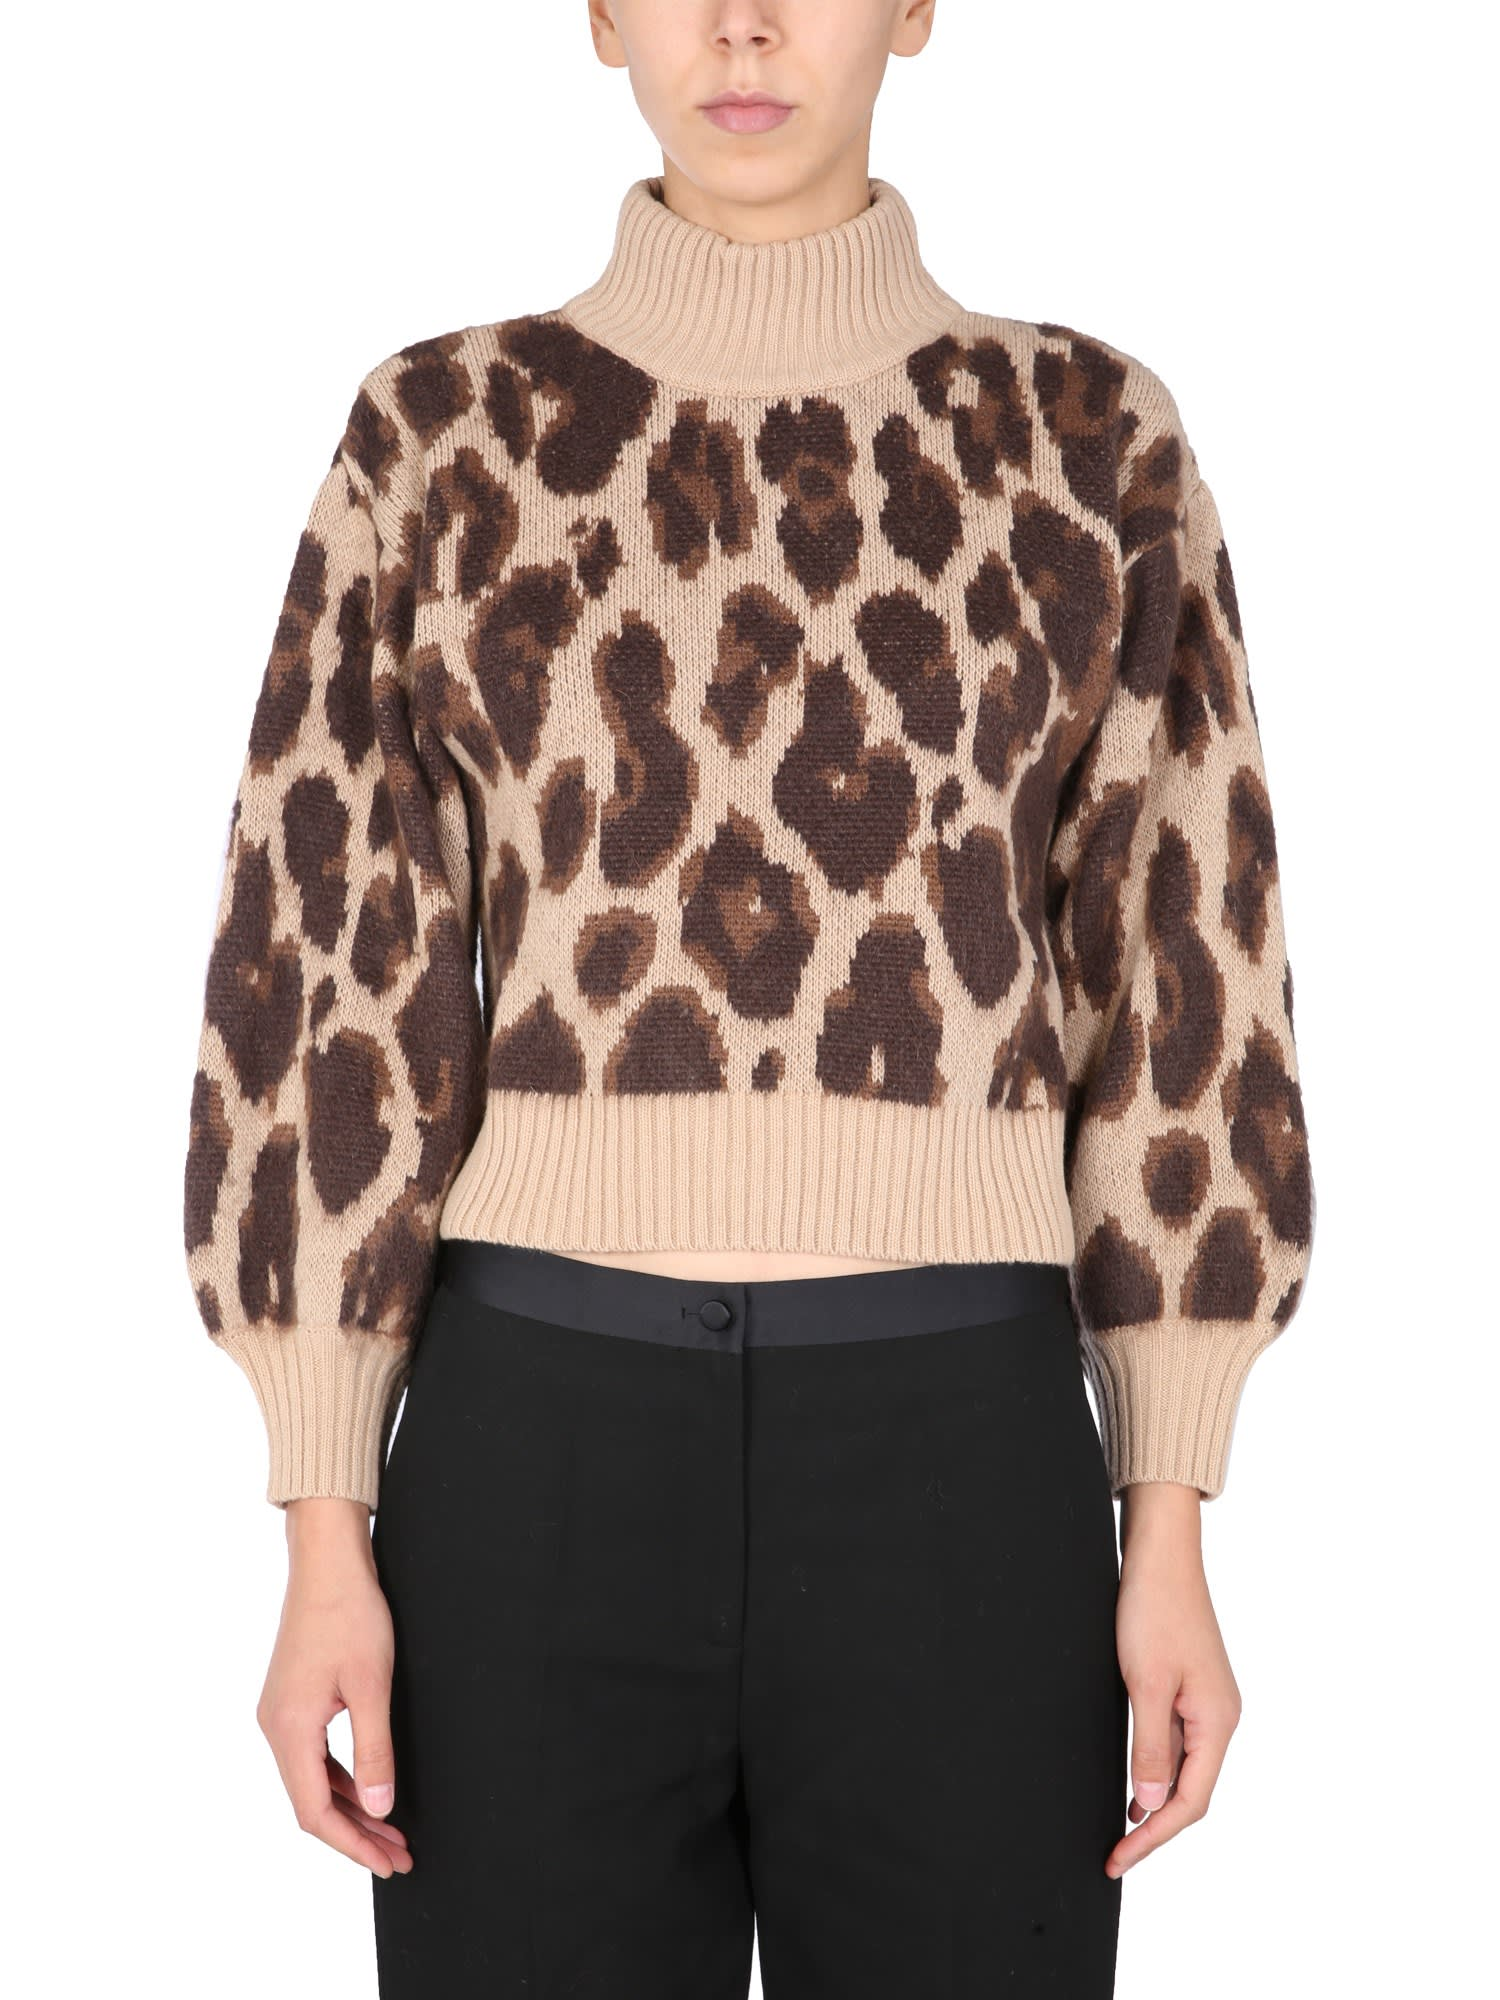 Sweater With Animal Print